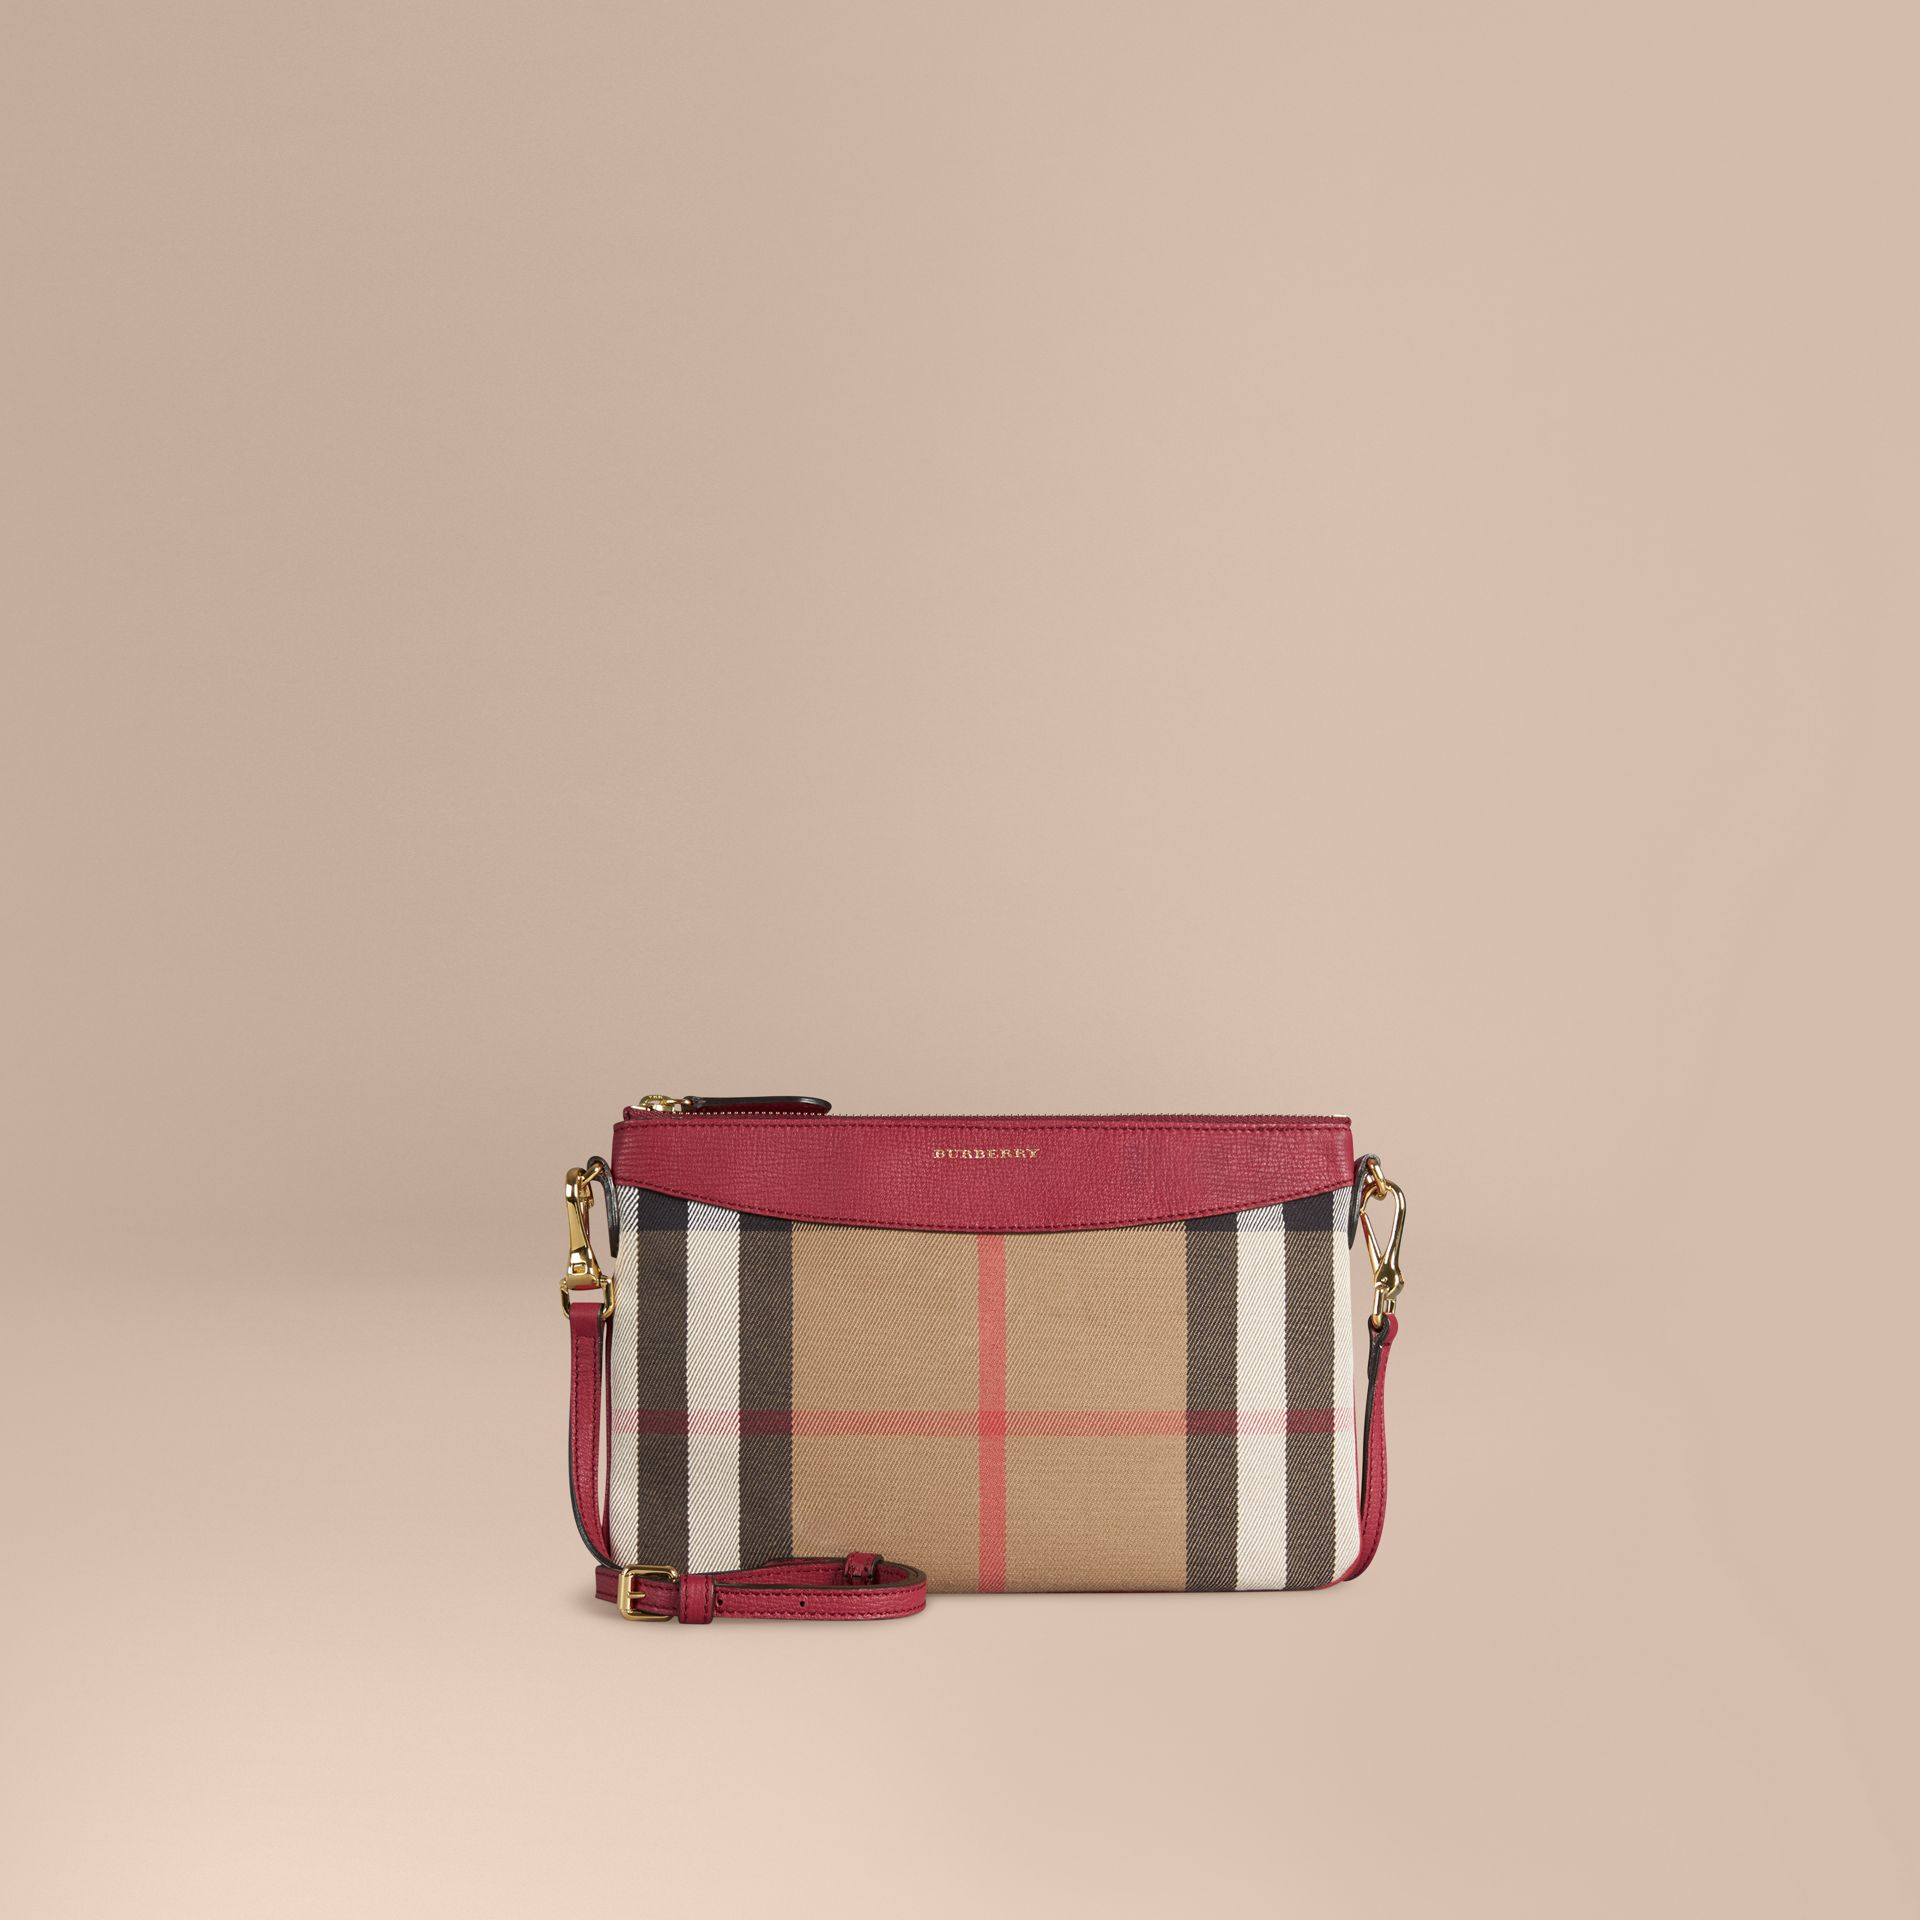 Clutch en coton House check et cuir (Rouge Militaire) - Femme | Burberry - photo de la galerie 1